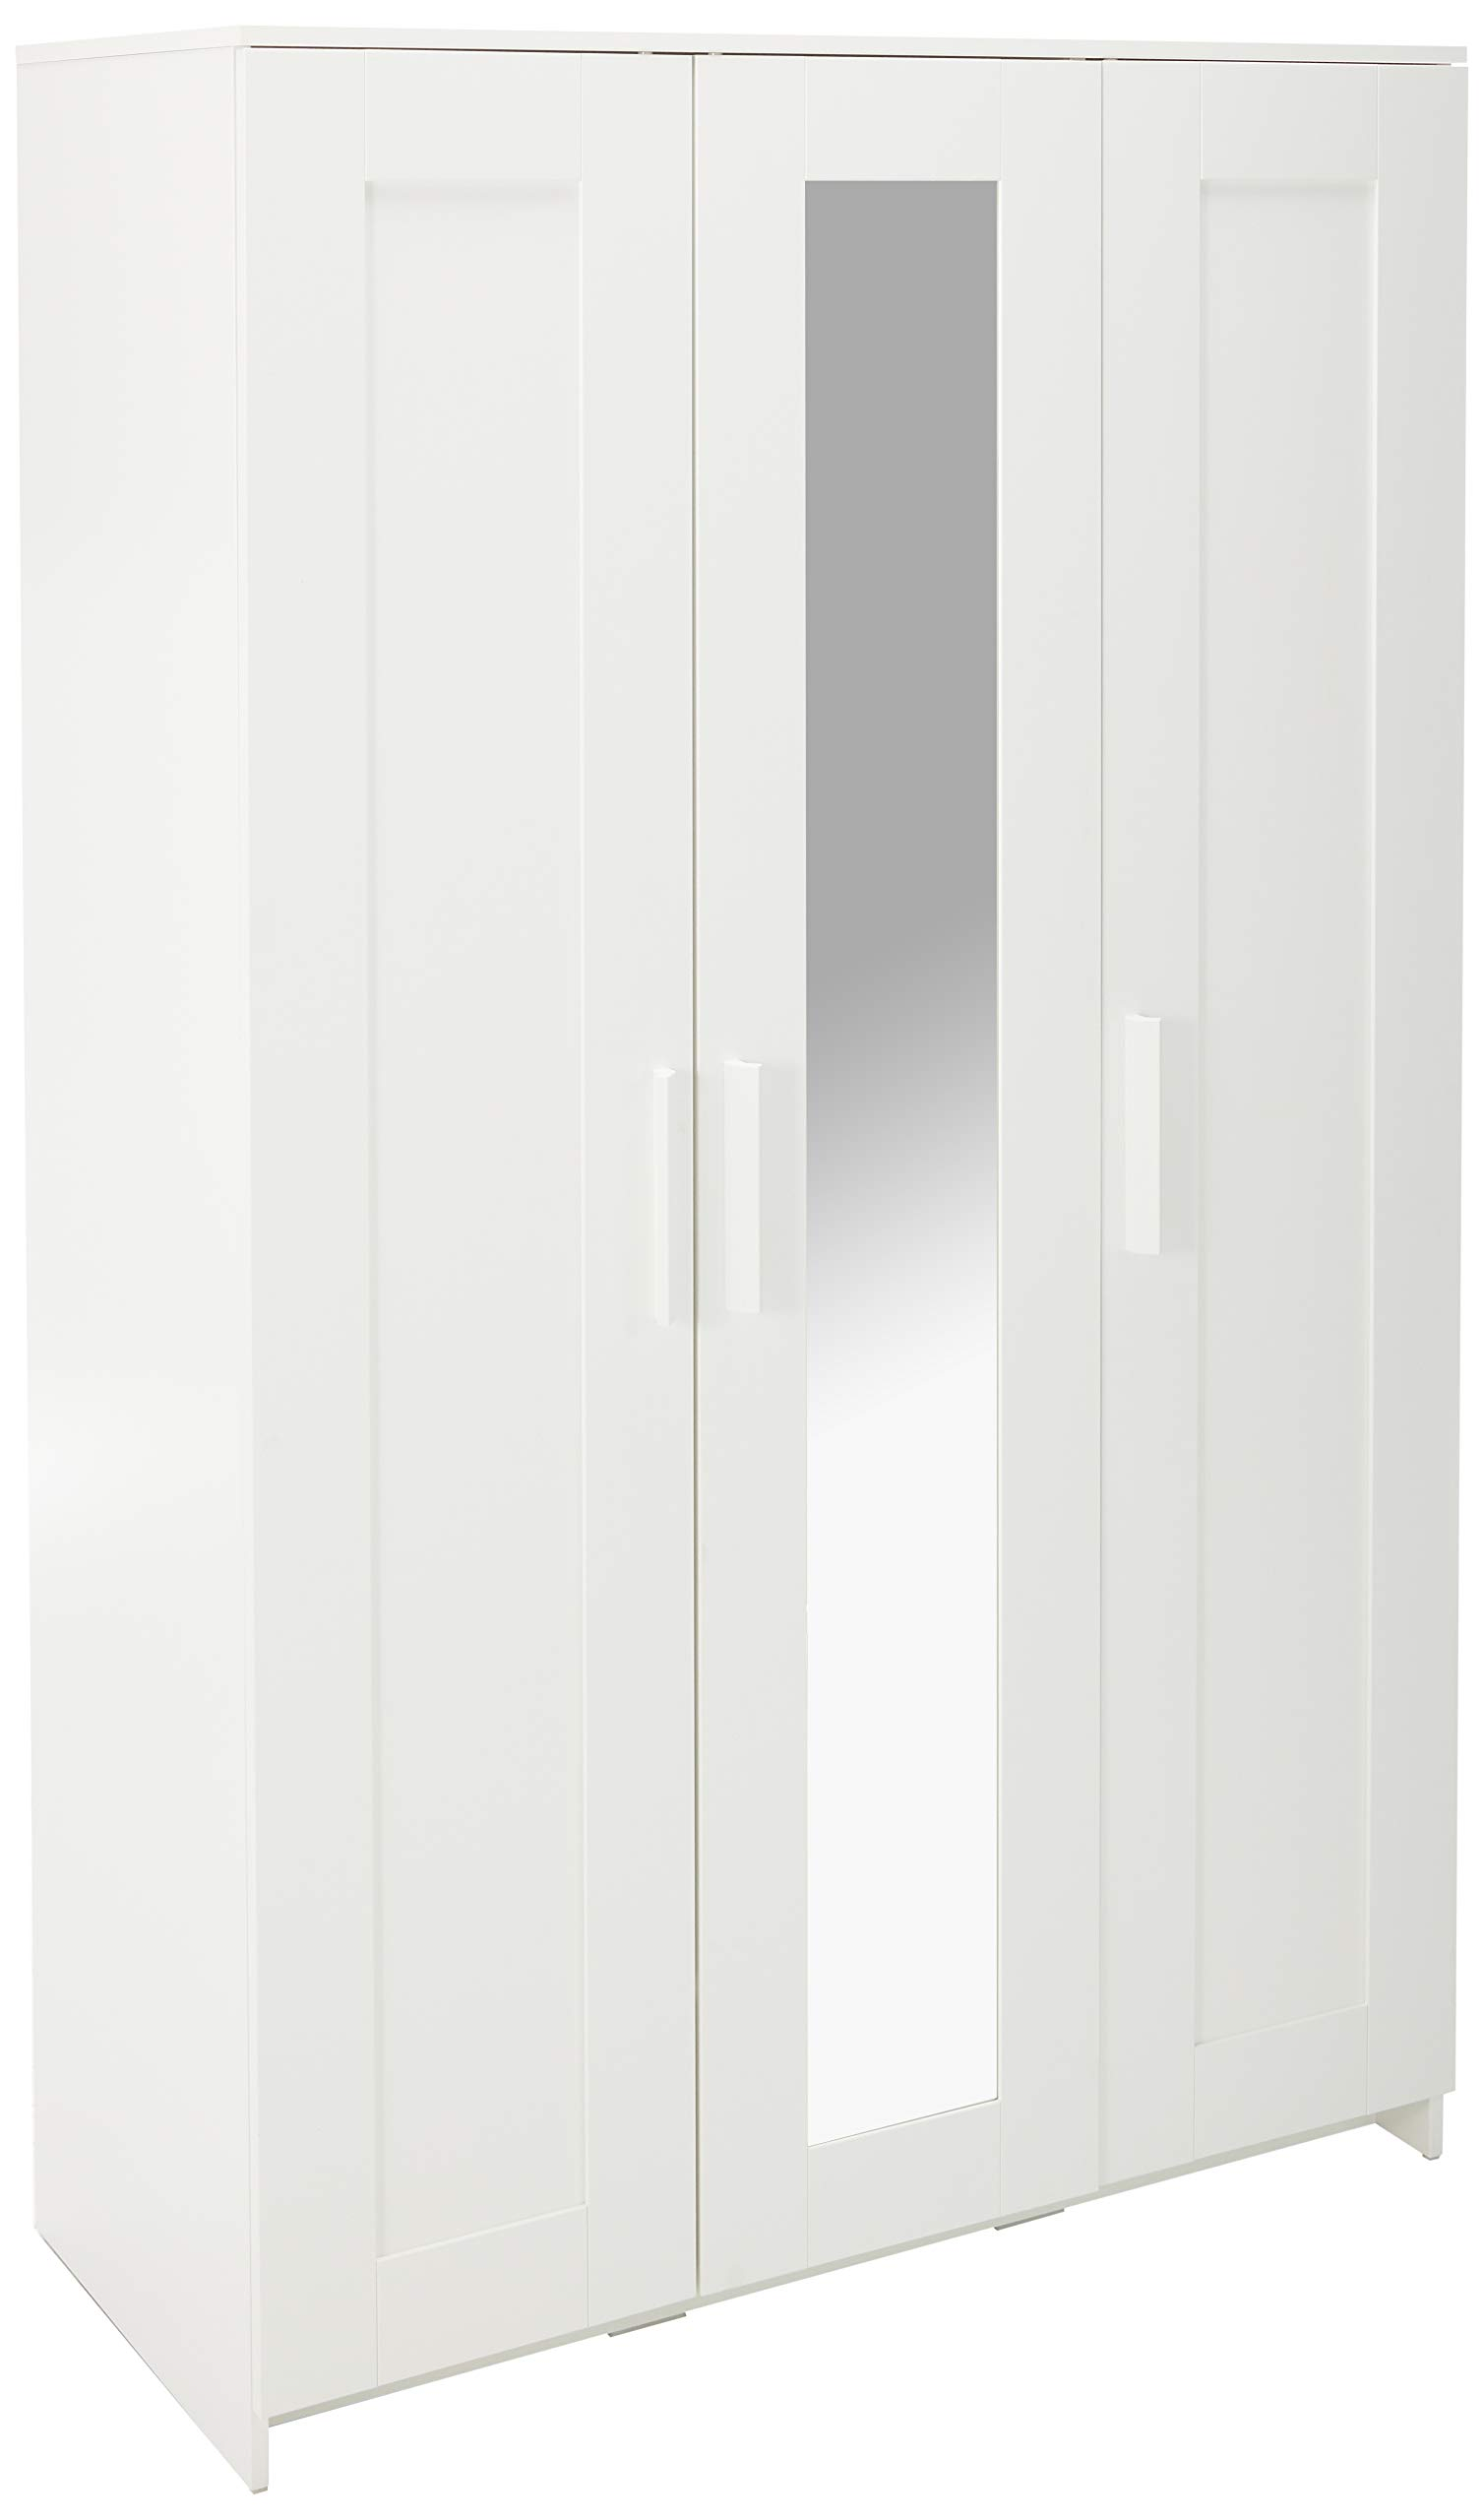 IKEA Brimnes Home Bedroom Wardrobeswardrobe with 3 Doors, White 103.947.18, 46x74 3/4'''', Multicolor by IKEA